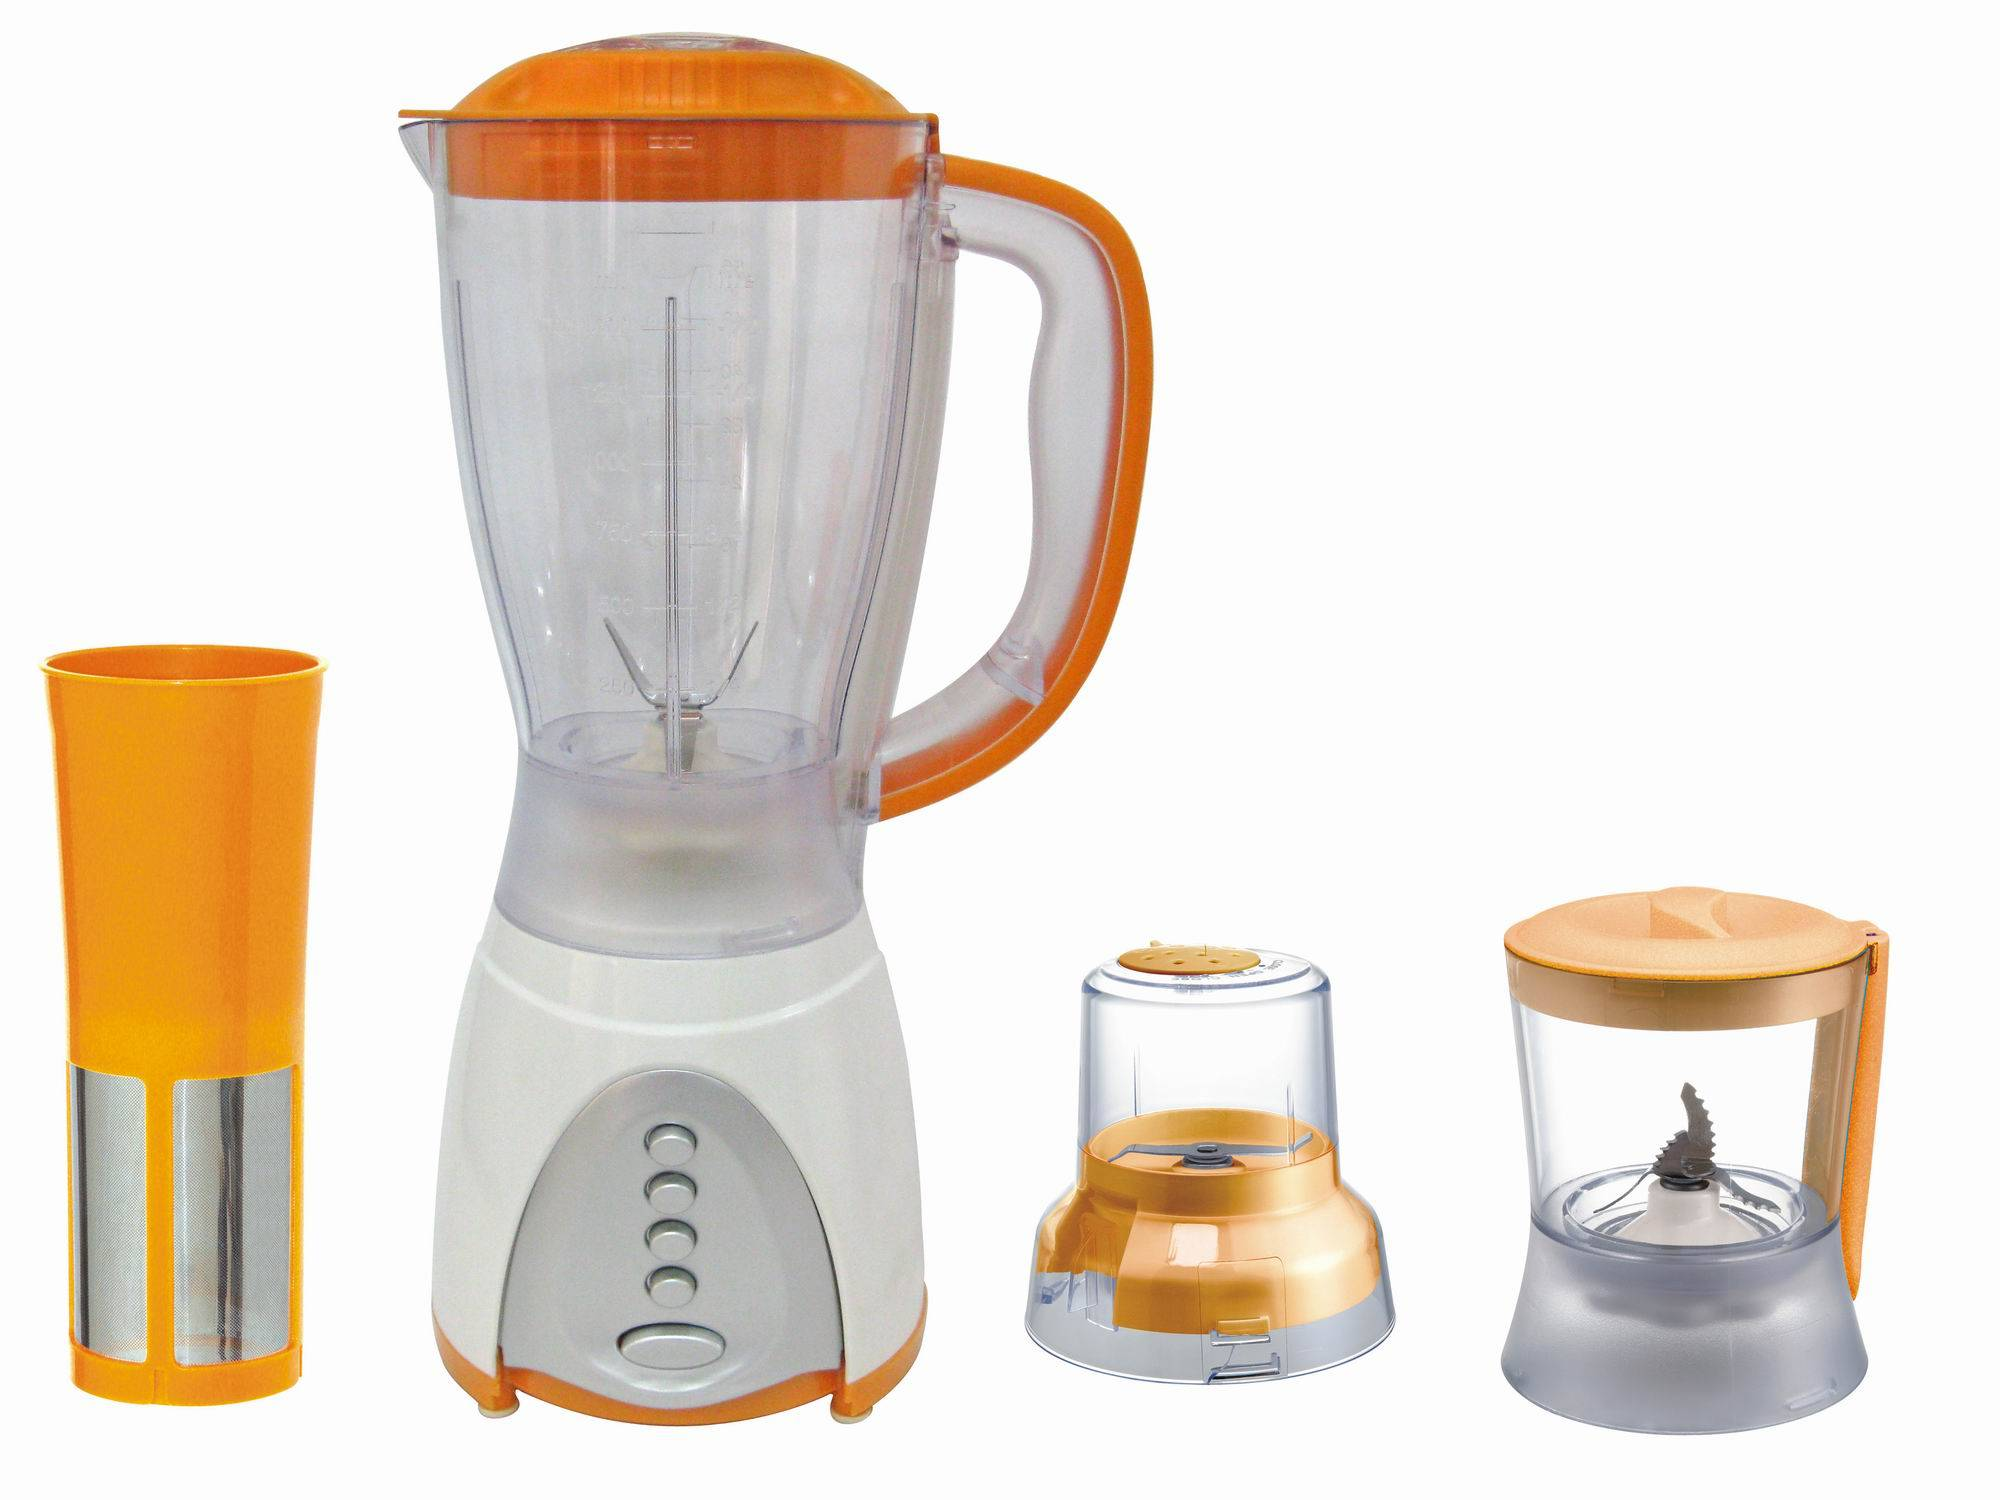 Kitchen Blender With Food Chopper AK-380A 4in1